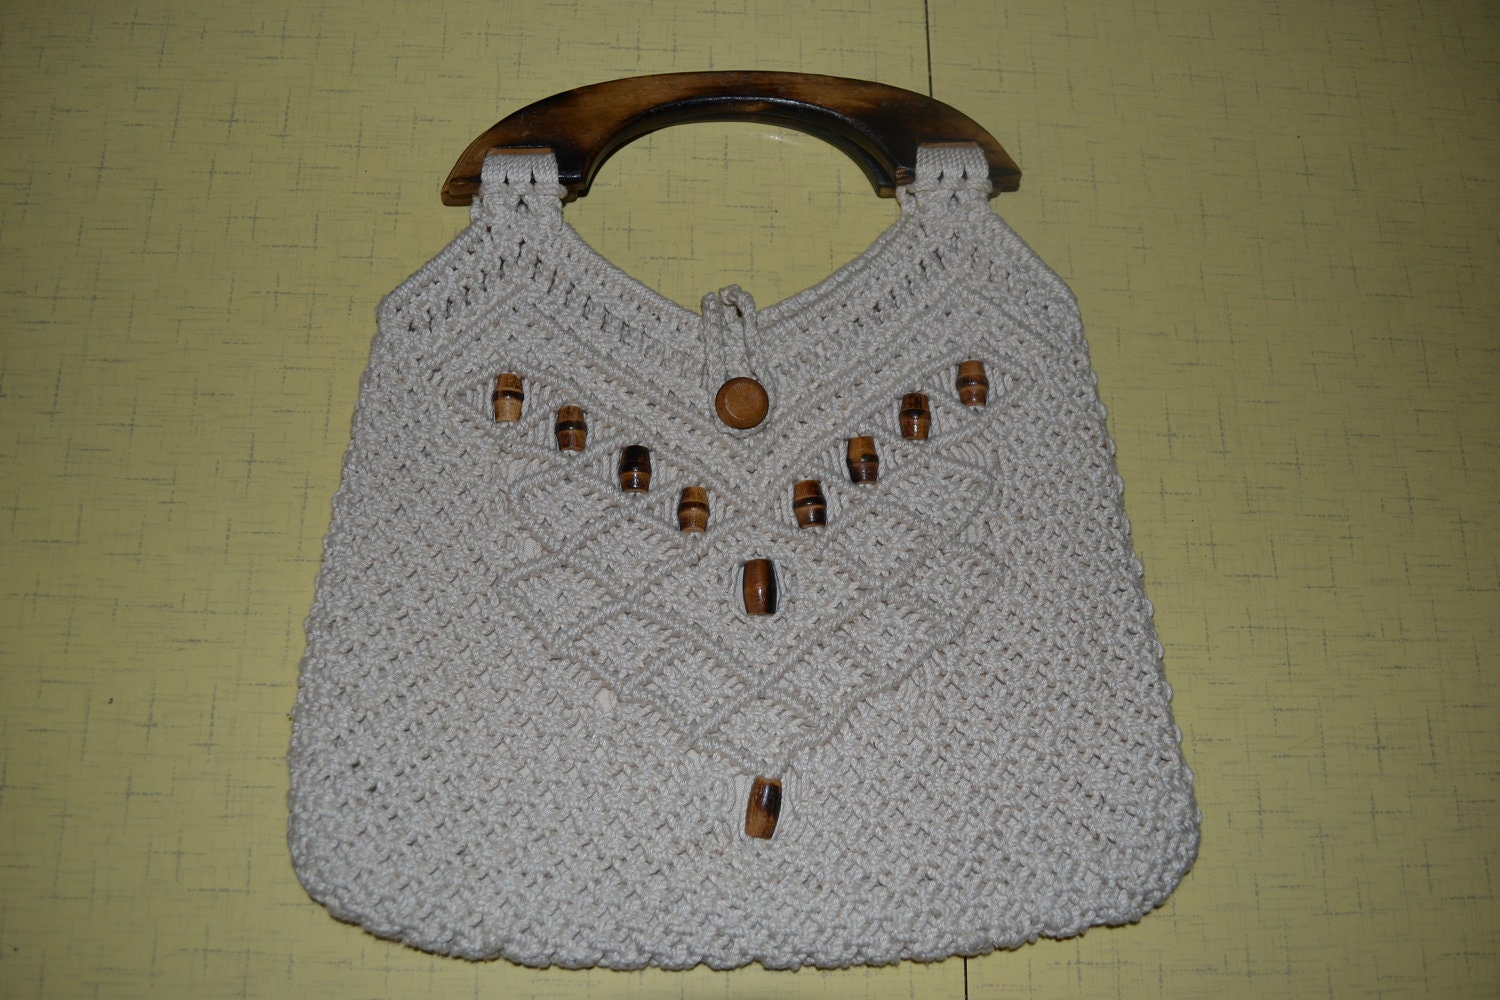 Cream Colored Macrame Purse With Wooden Handles And Bead